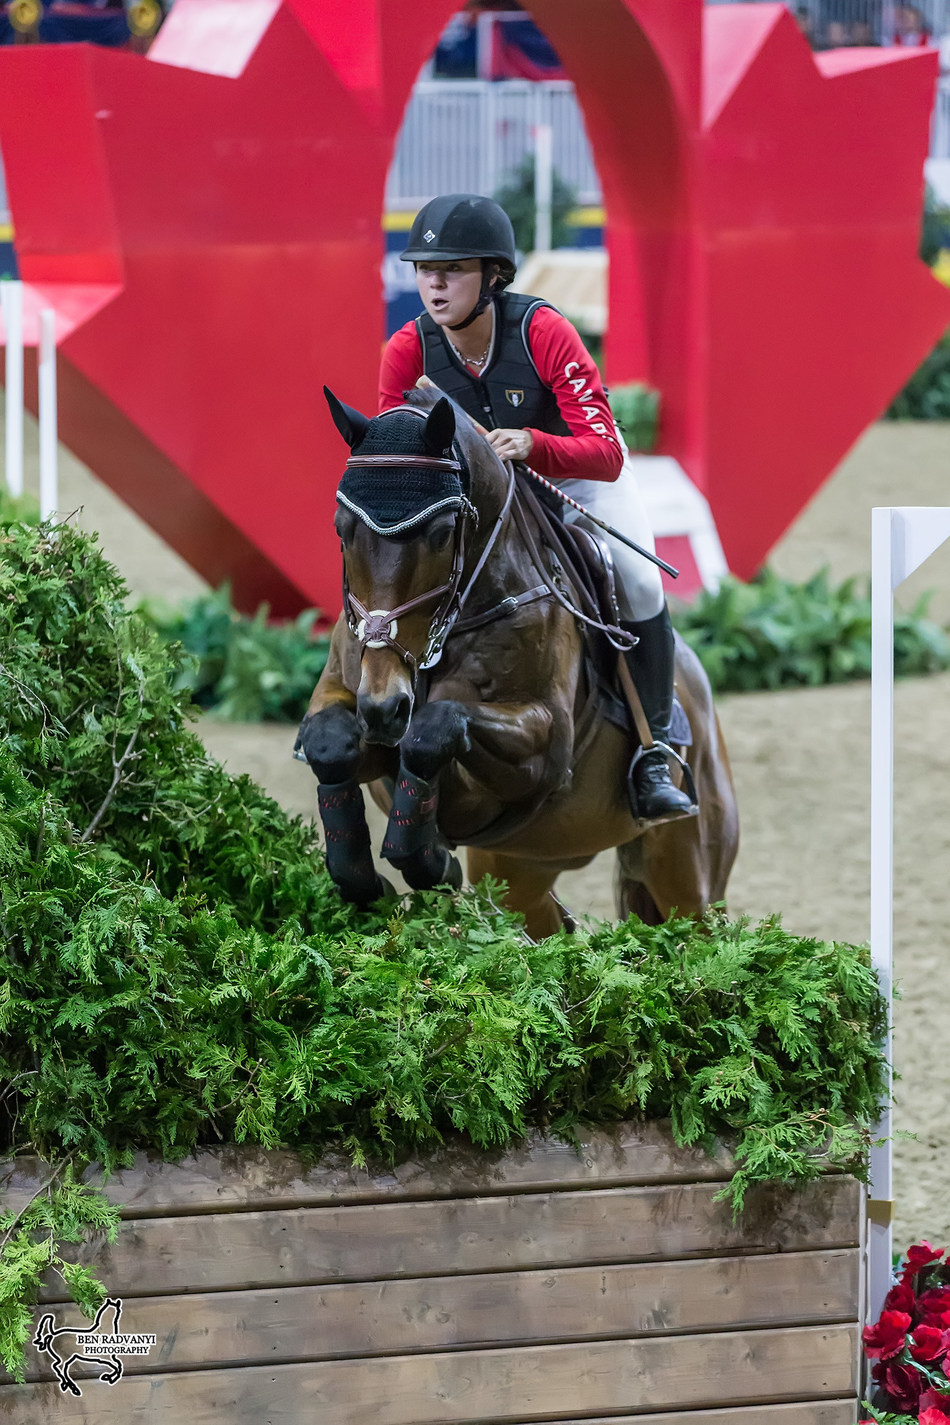 Rachel McDonough of Toronto, ON, leads the $20,000 Horseware Indoor Eventing Challenge after topping the first phase of competition riding Irish Rhythm on Friday, November 3, at Toronto's Royal Horse Show. Photo by Ben Radvanyi Photography (CNW Group/Royal Agricultural Winter Fair)